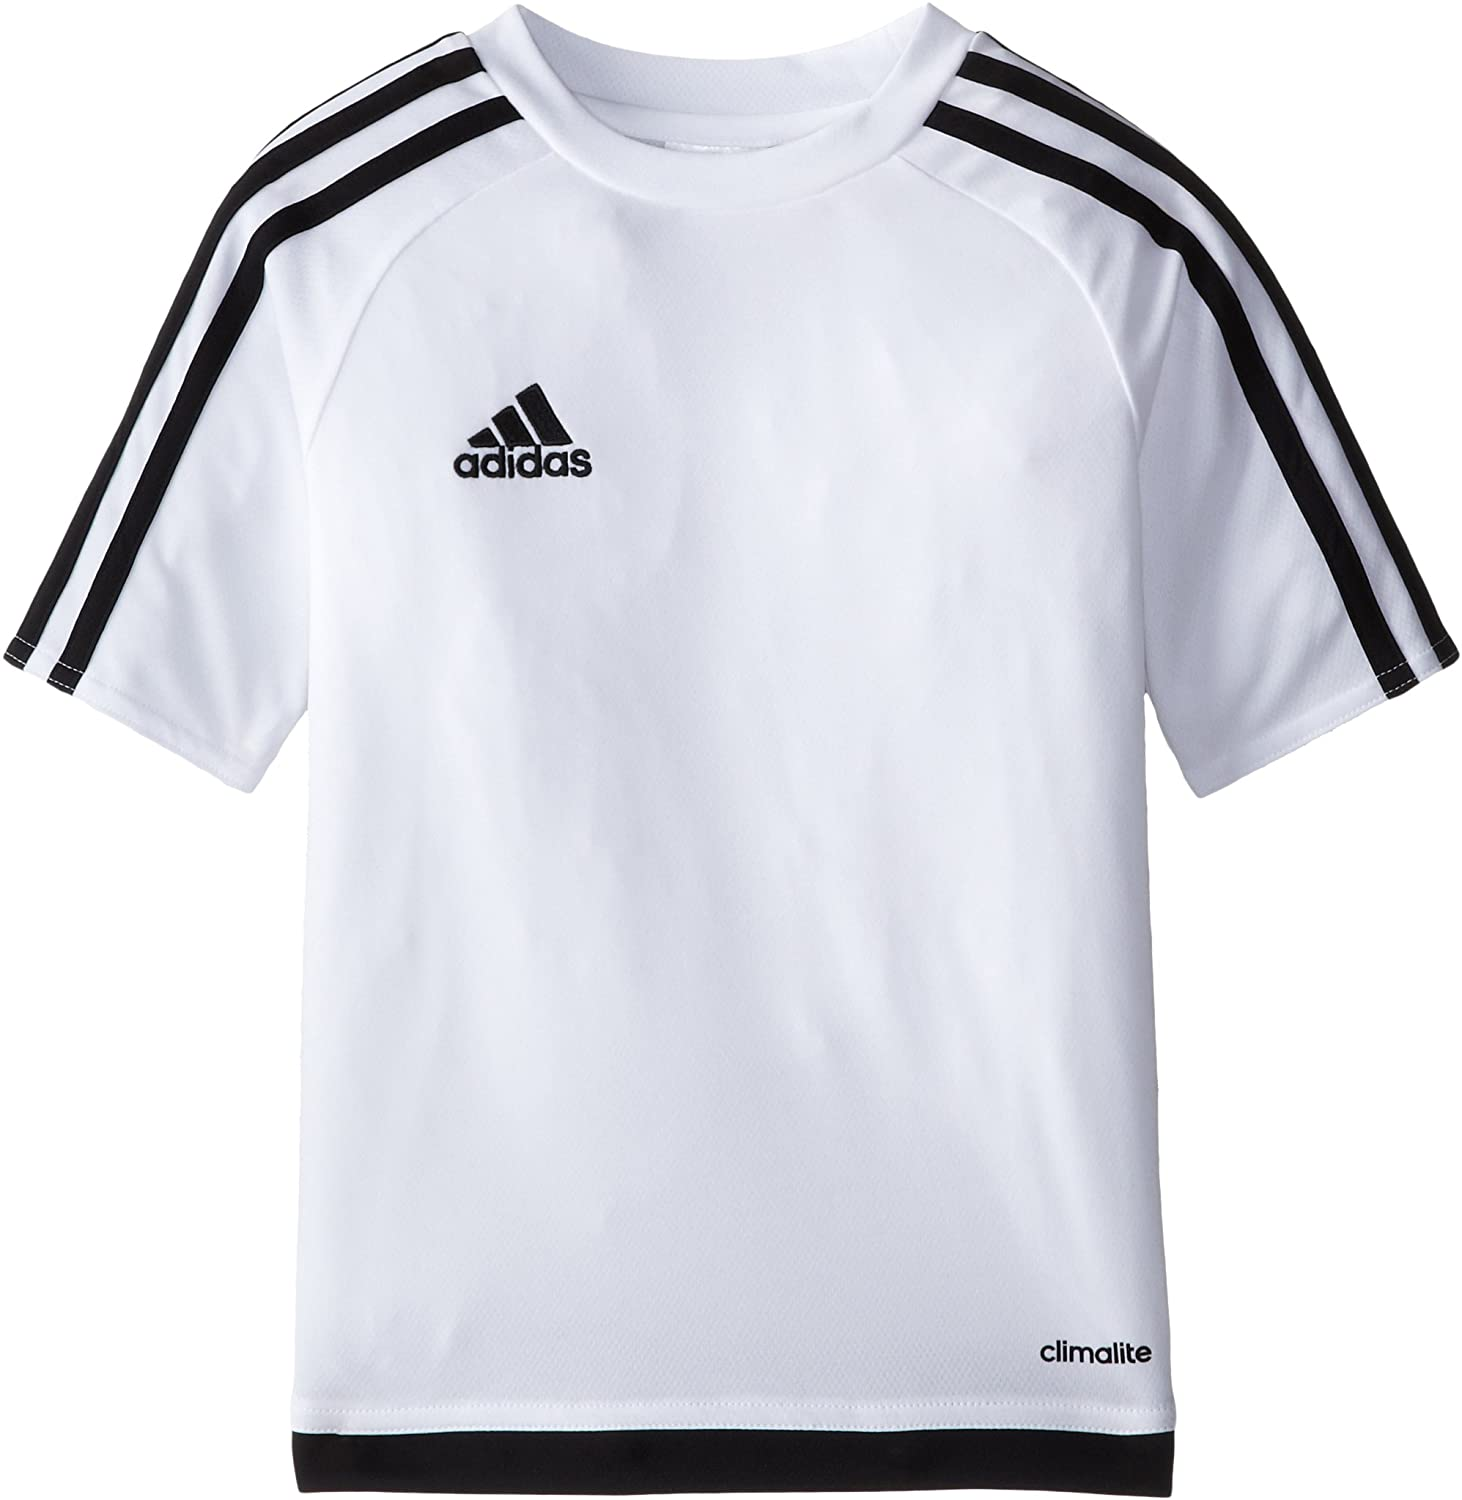 white adidas jersey Off 51% - www.bashhguidelines.org